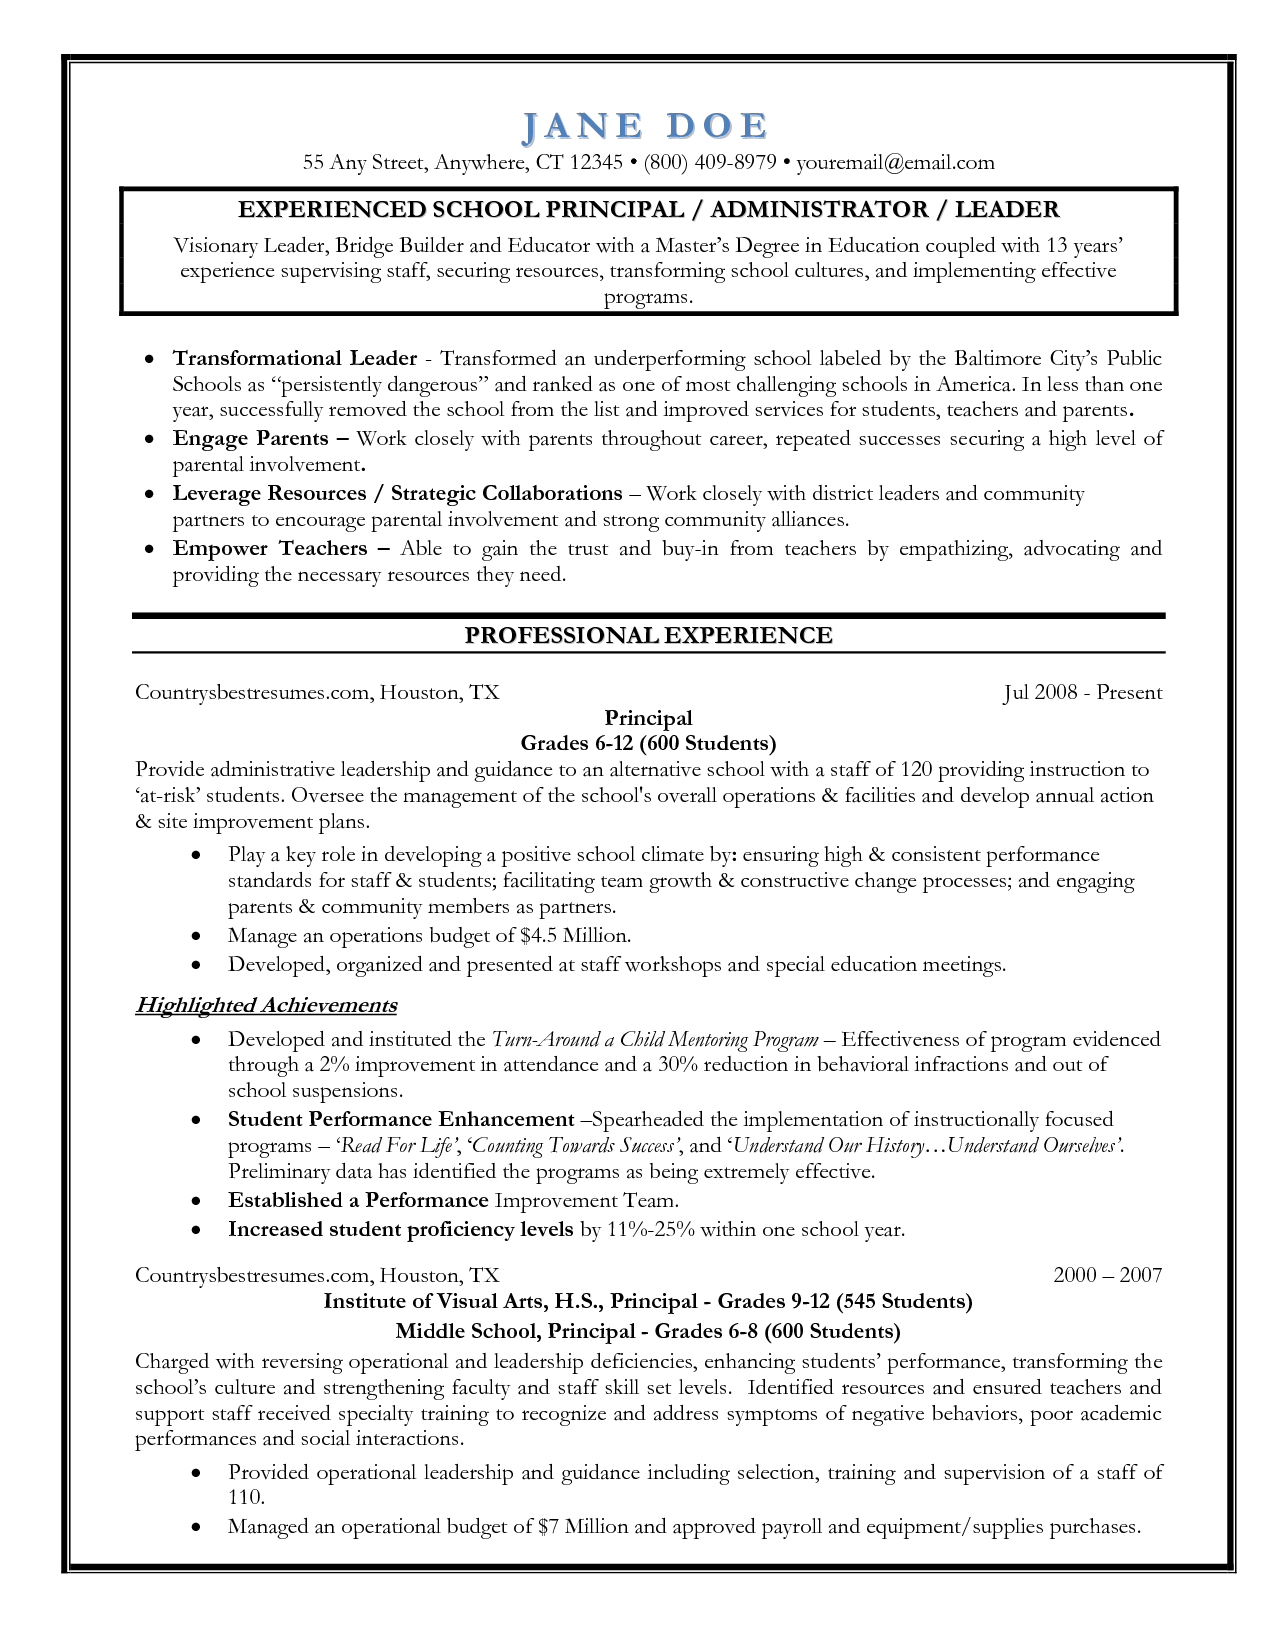 Sample Resume Formats Entrylevel Assistant Principal Resume Templates  Senior Educator